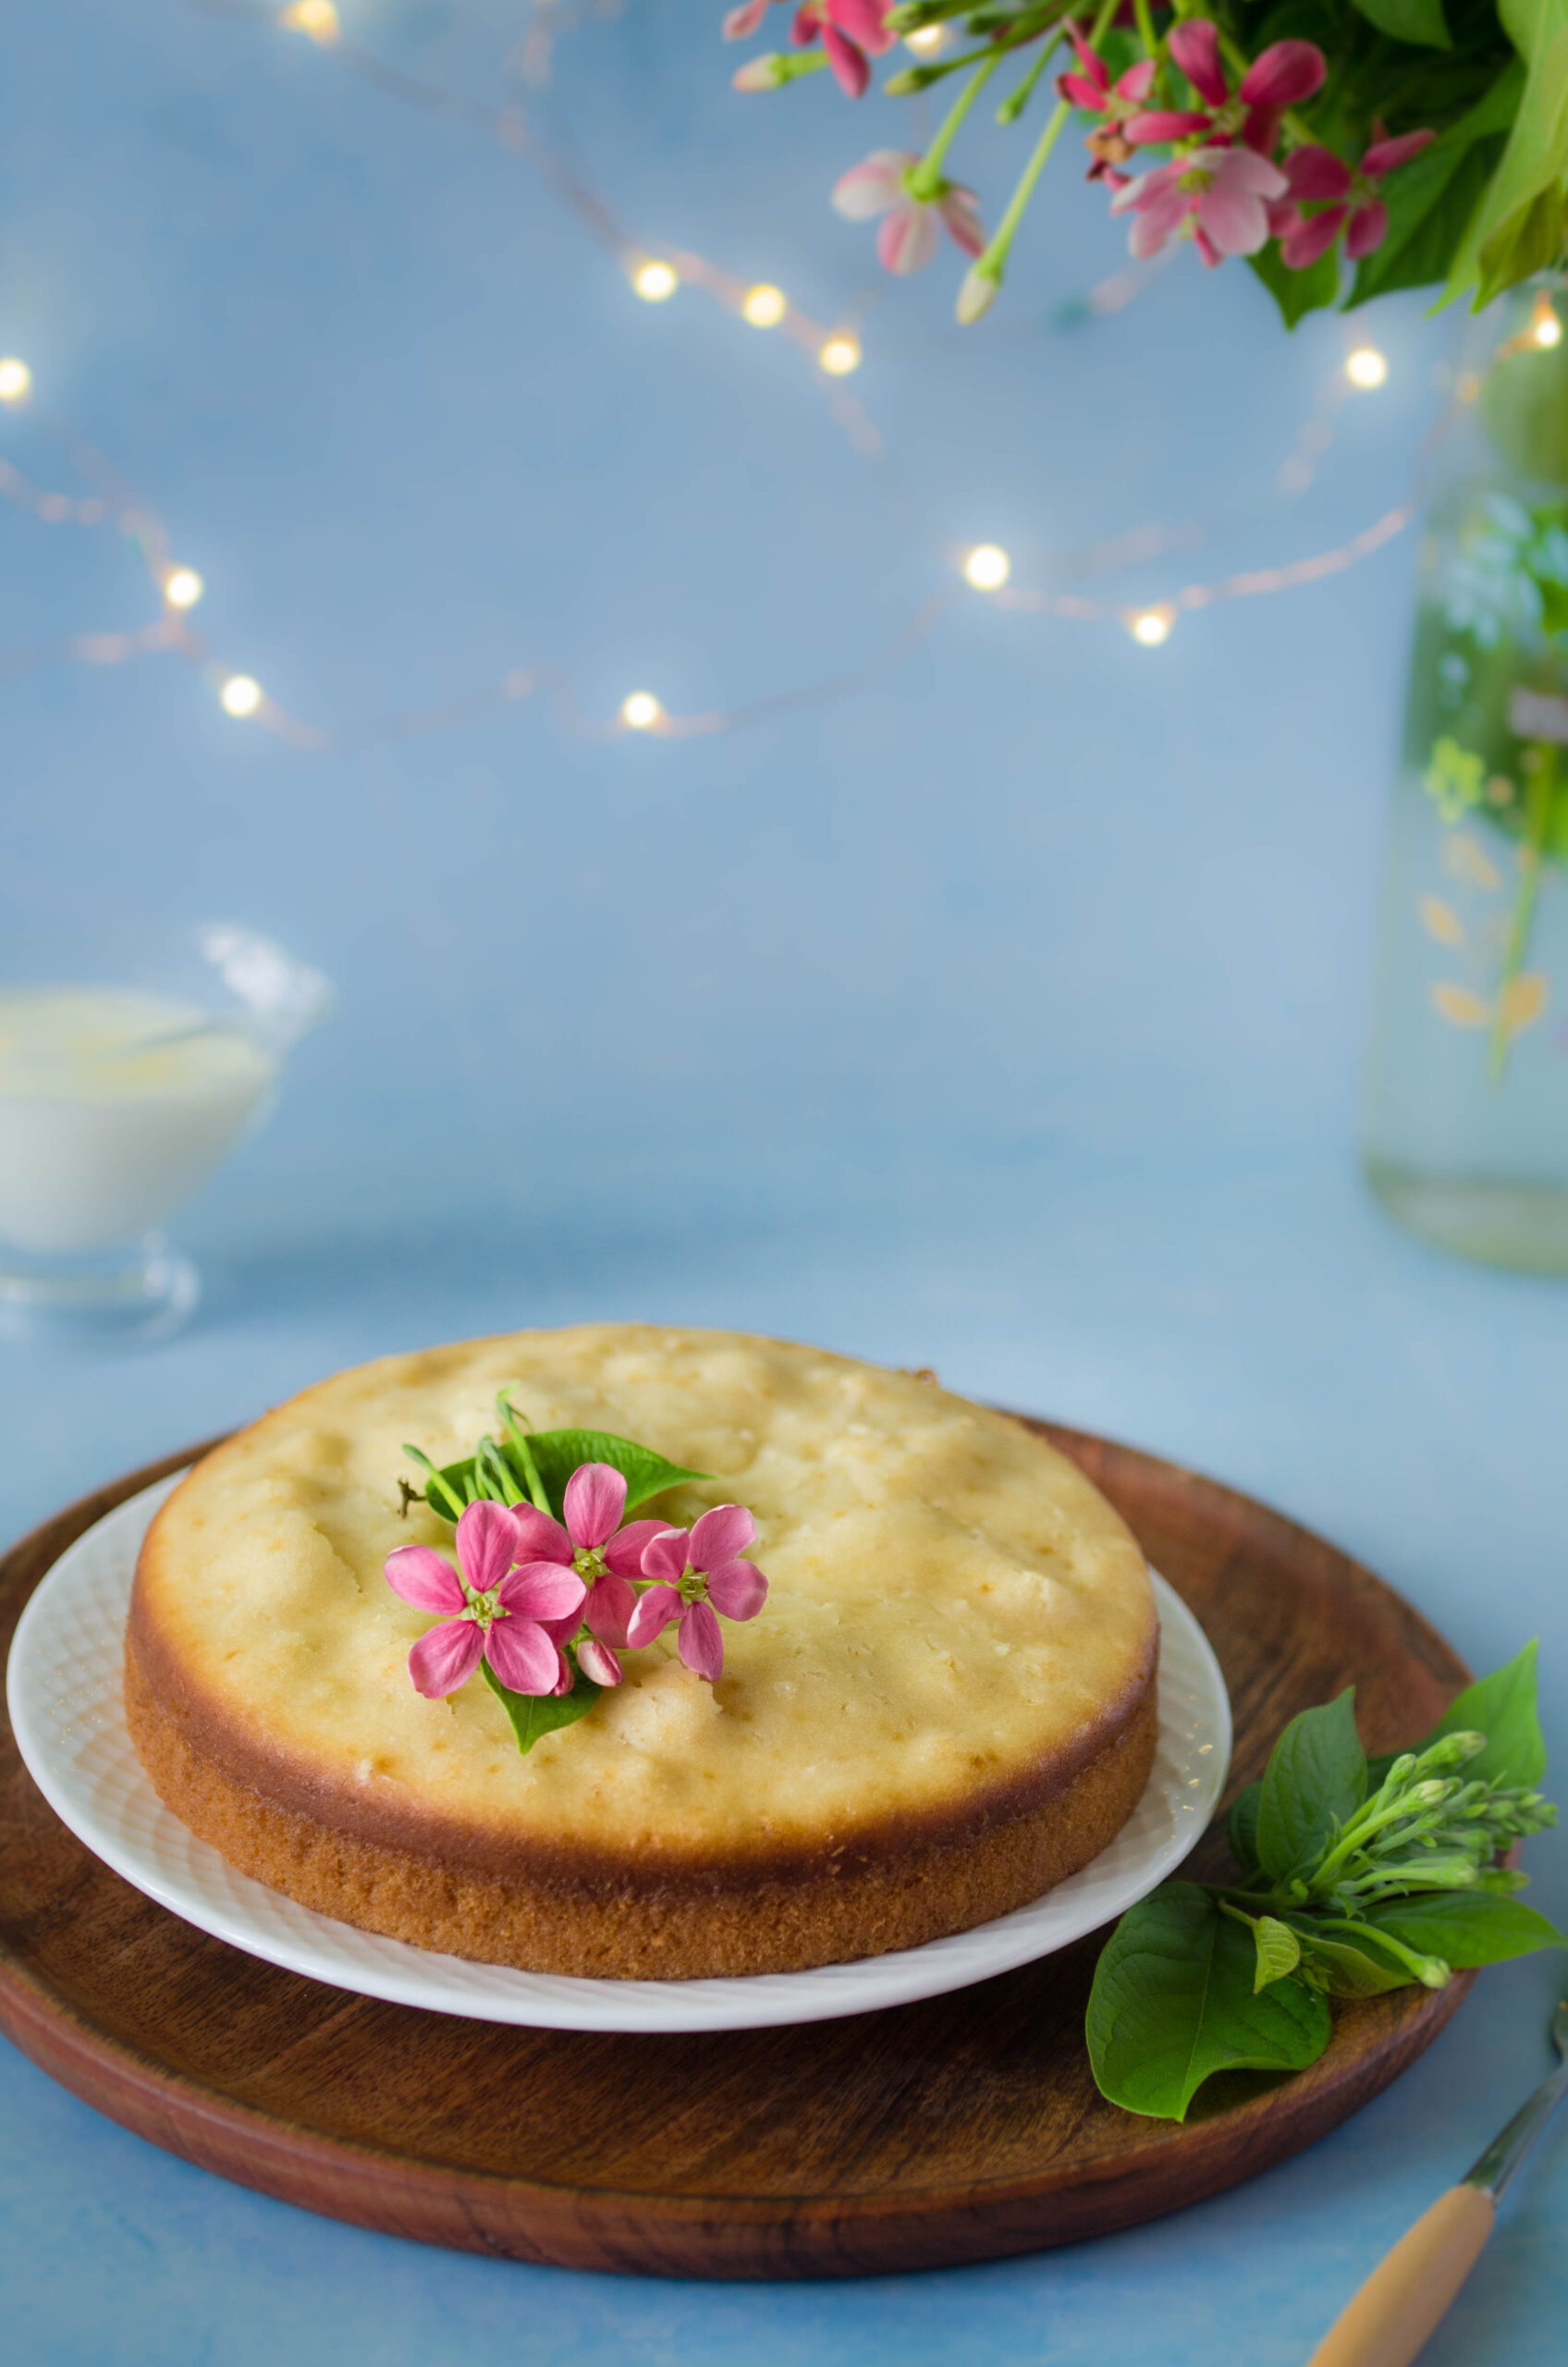 Eggless Tres leches cake-1654